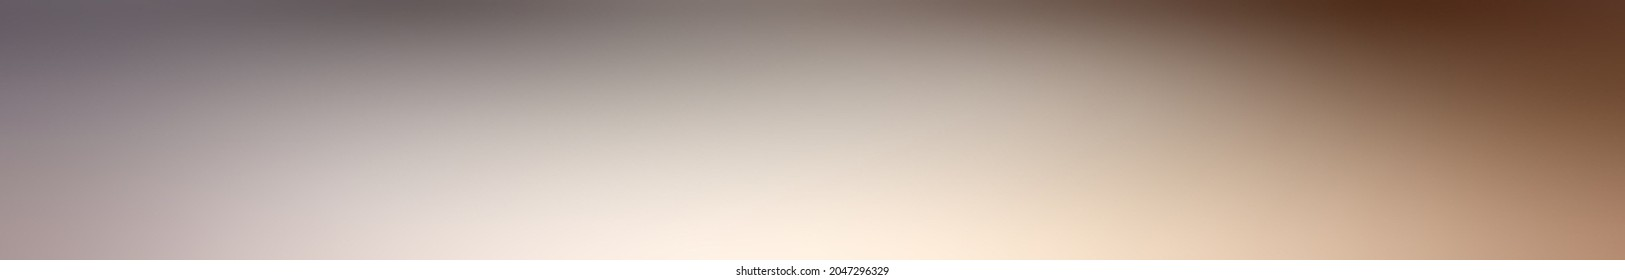 Glow defocus texture light bluish gray, pale gray brown and grey color. Tone multi mesh gradient abstract colorful for background illustration